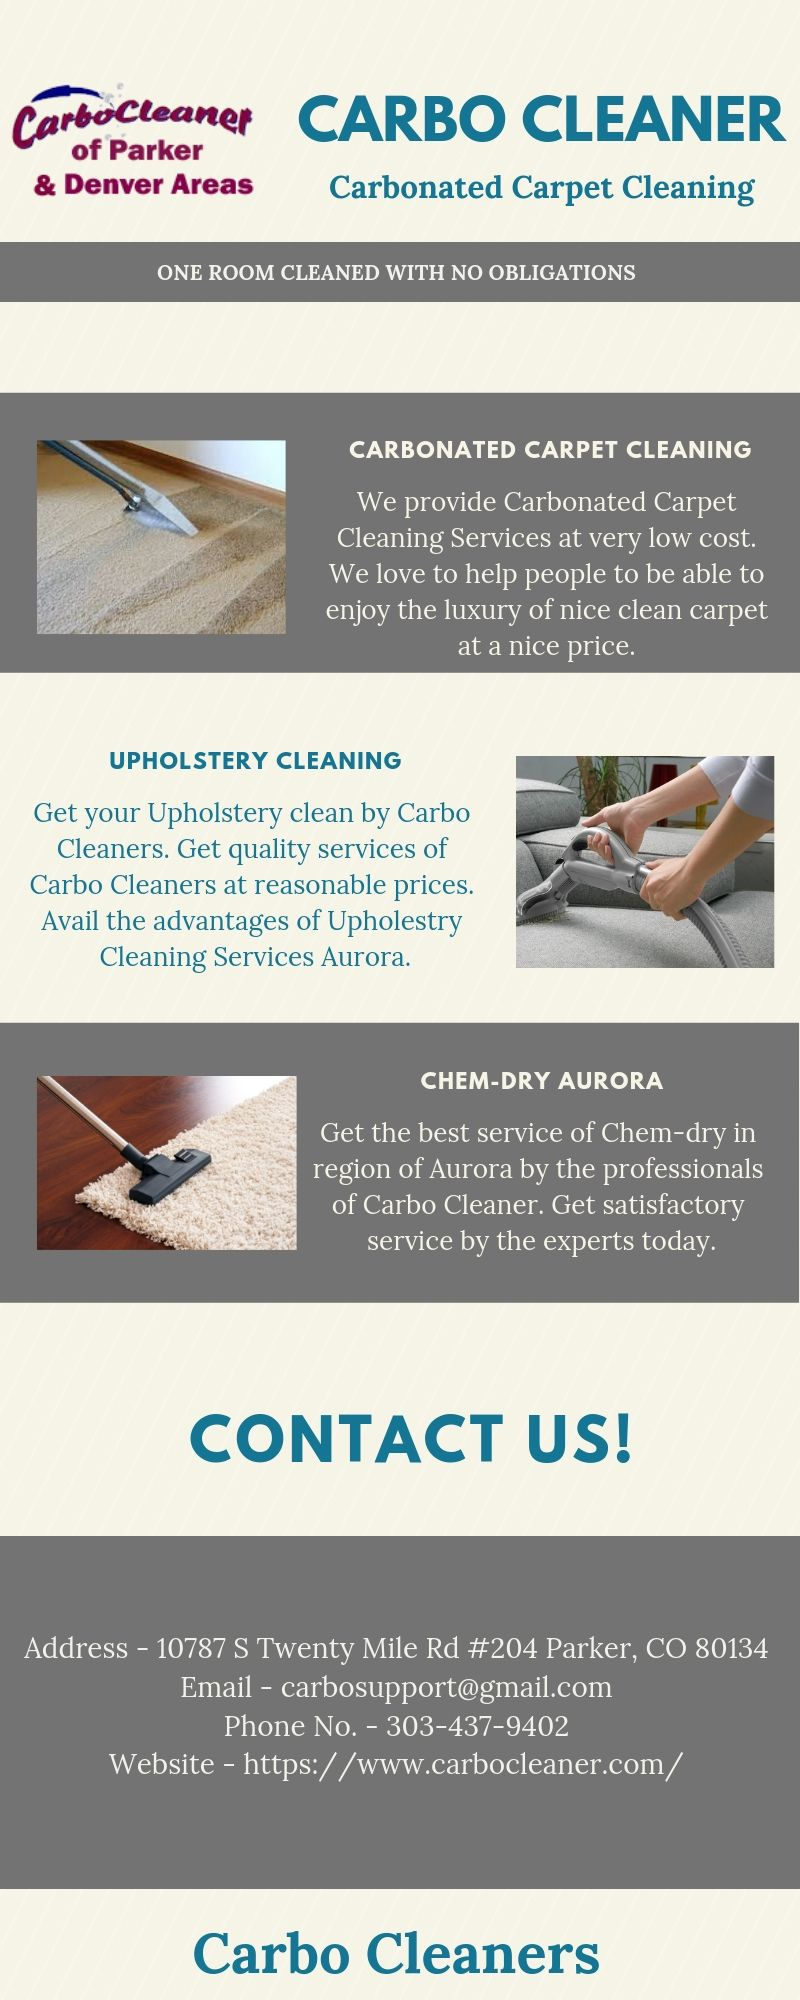 Carbo Cleaner Is A Dedicated To Delivering The Best Quality Service Of Carpet Cleaning I Carpet Cleaning Service How To Clean Carpet Commercial Carpet Cleaning